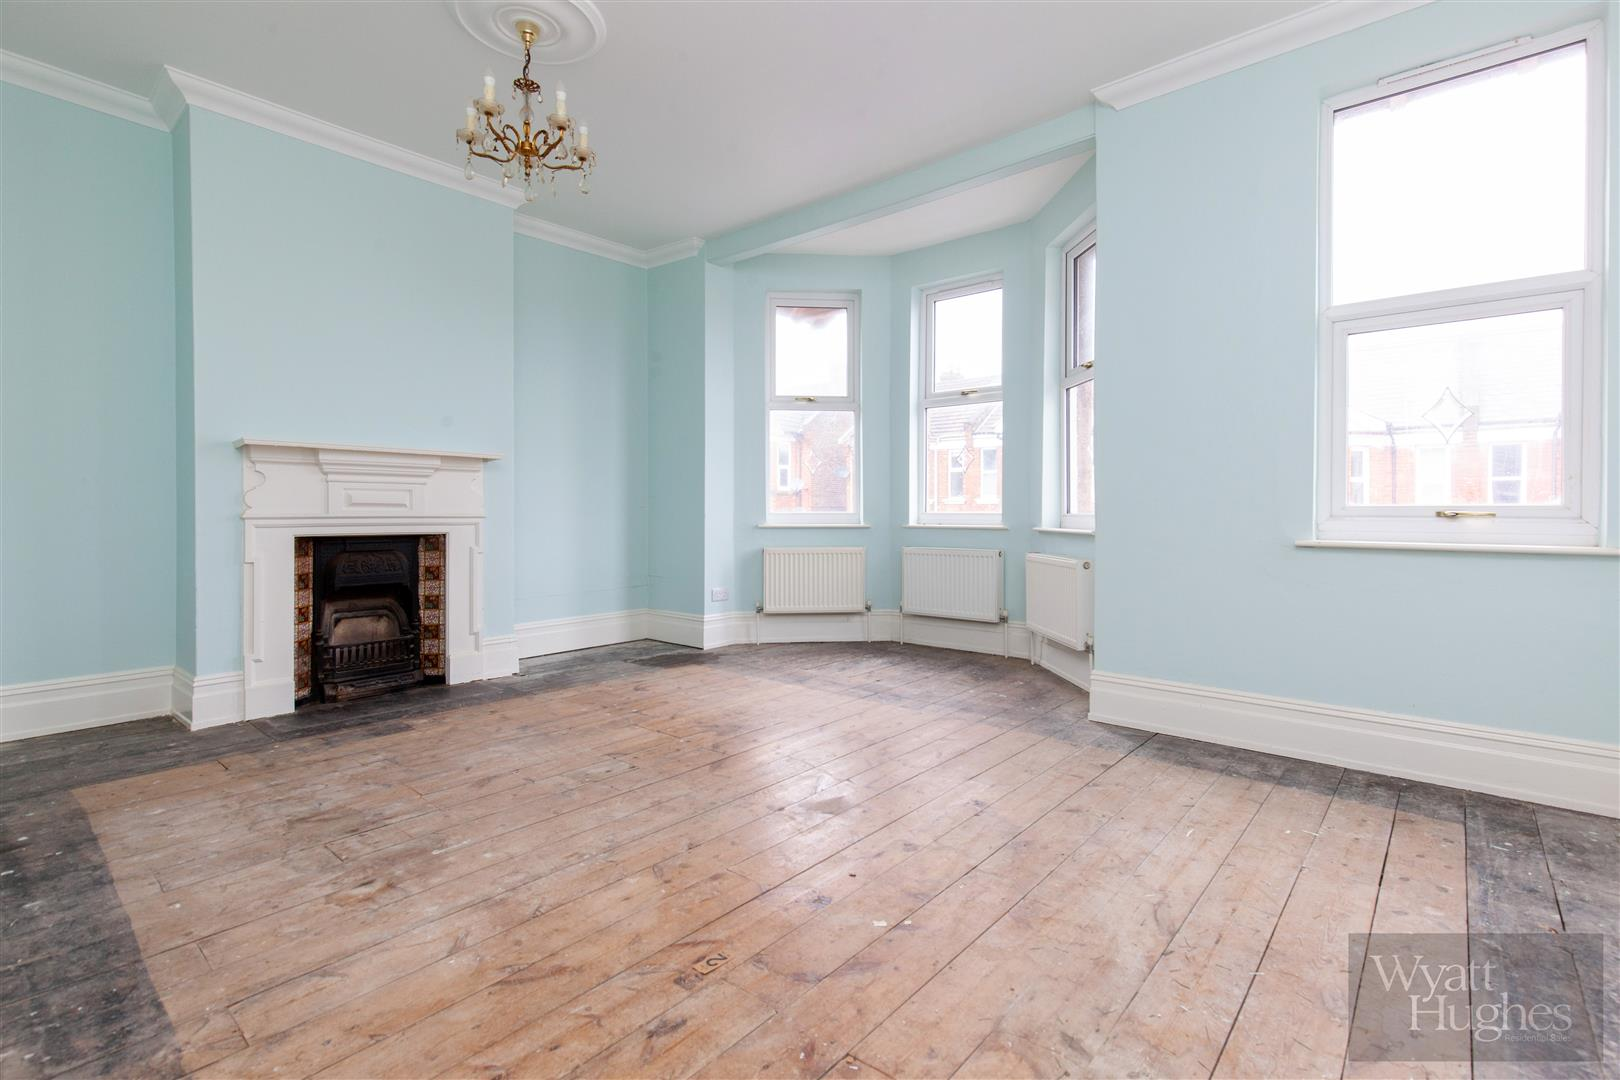 3 bed end-of-terrace-house for sale in Burry Road, St. Leonards-On-Sea  - Property Image 4